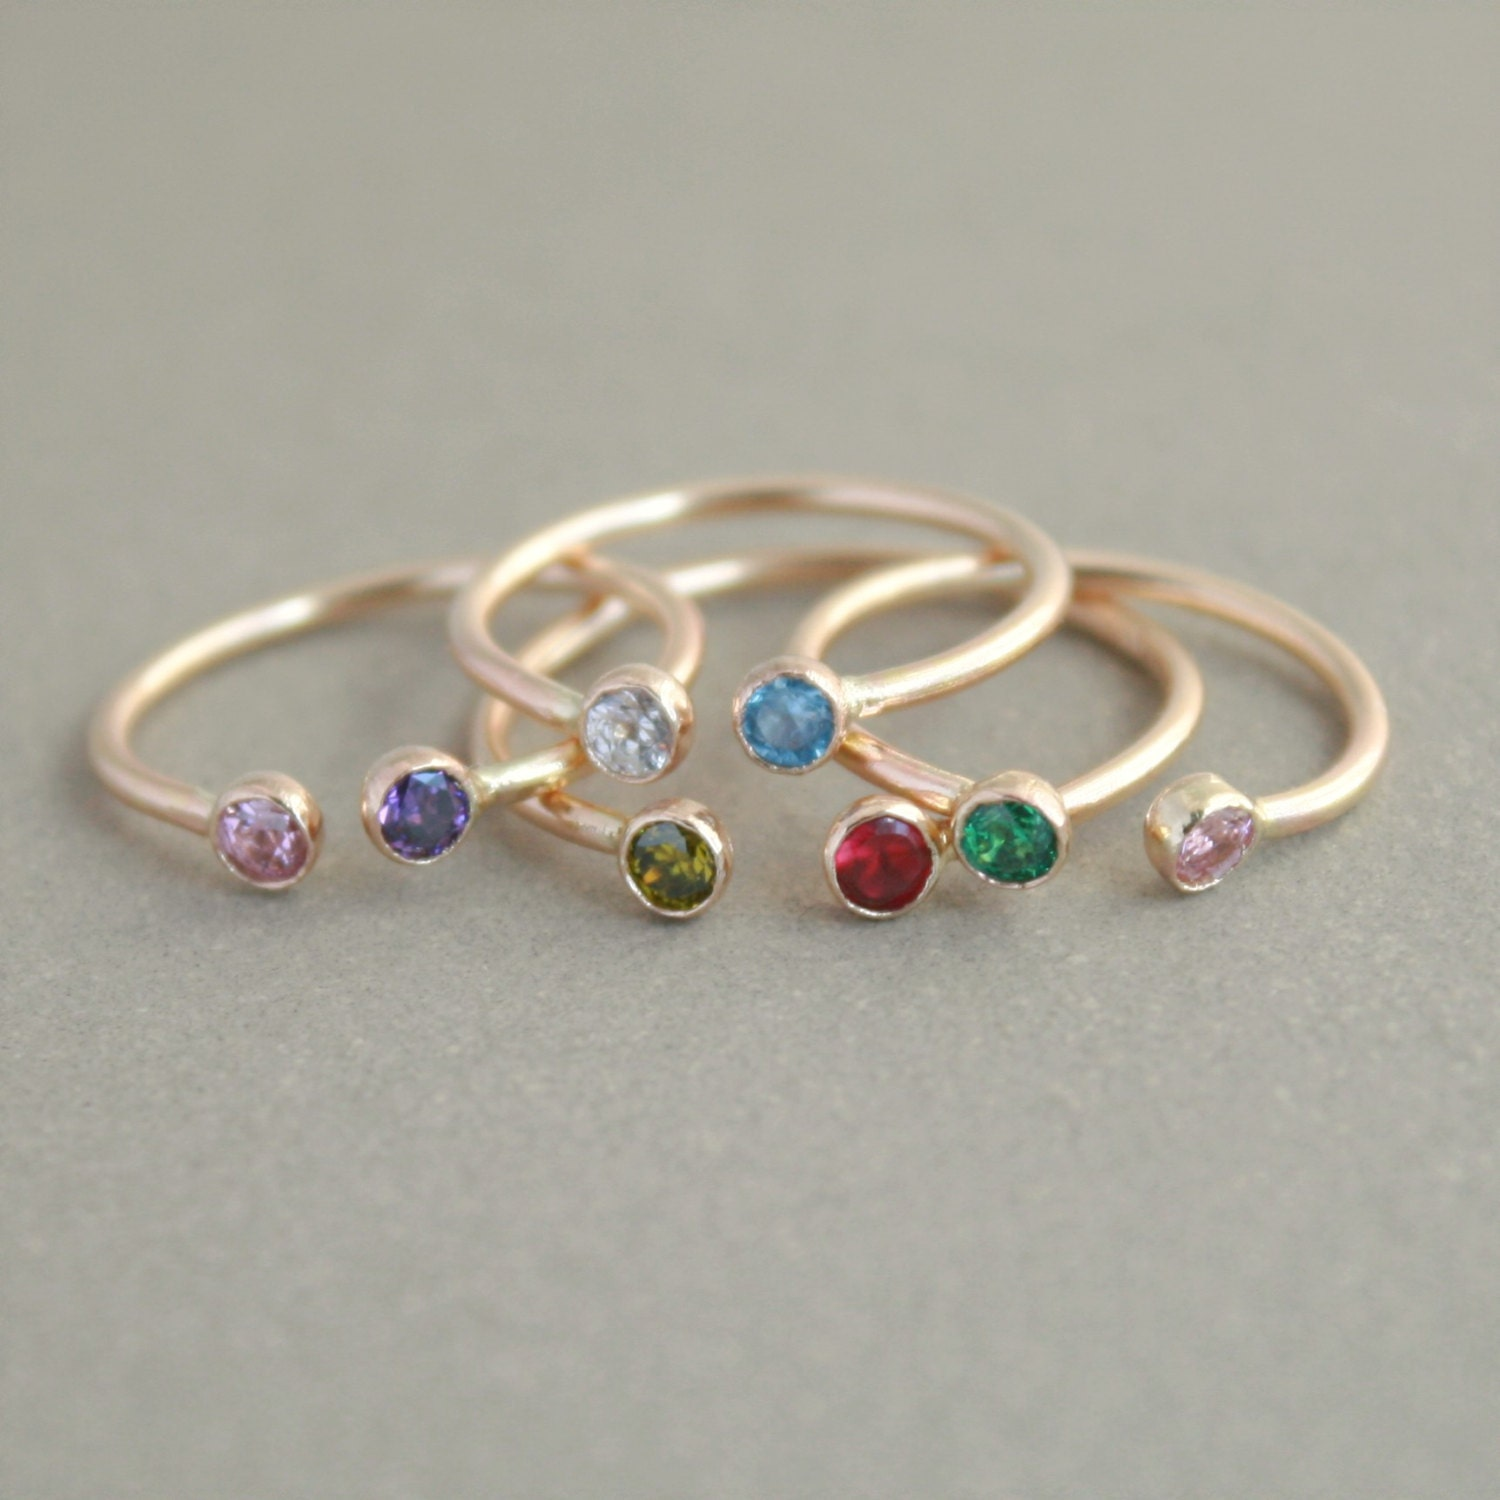 stella luna antique rings products estate and eternity birthstone band vintage stacking garnet